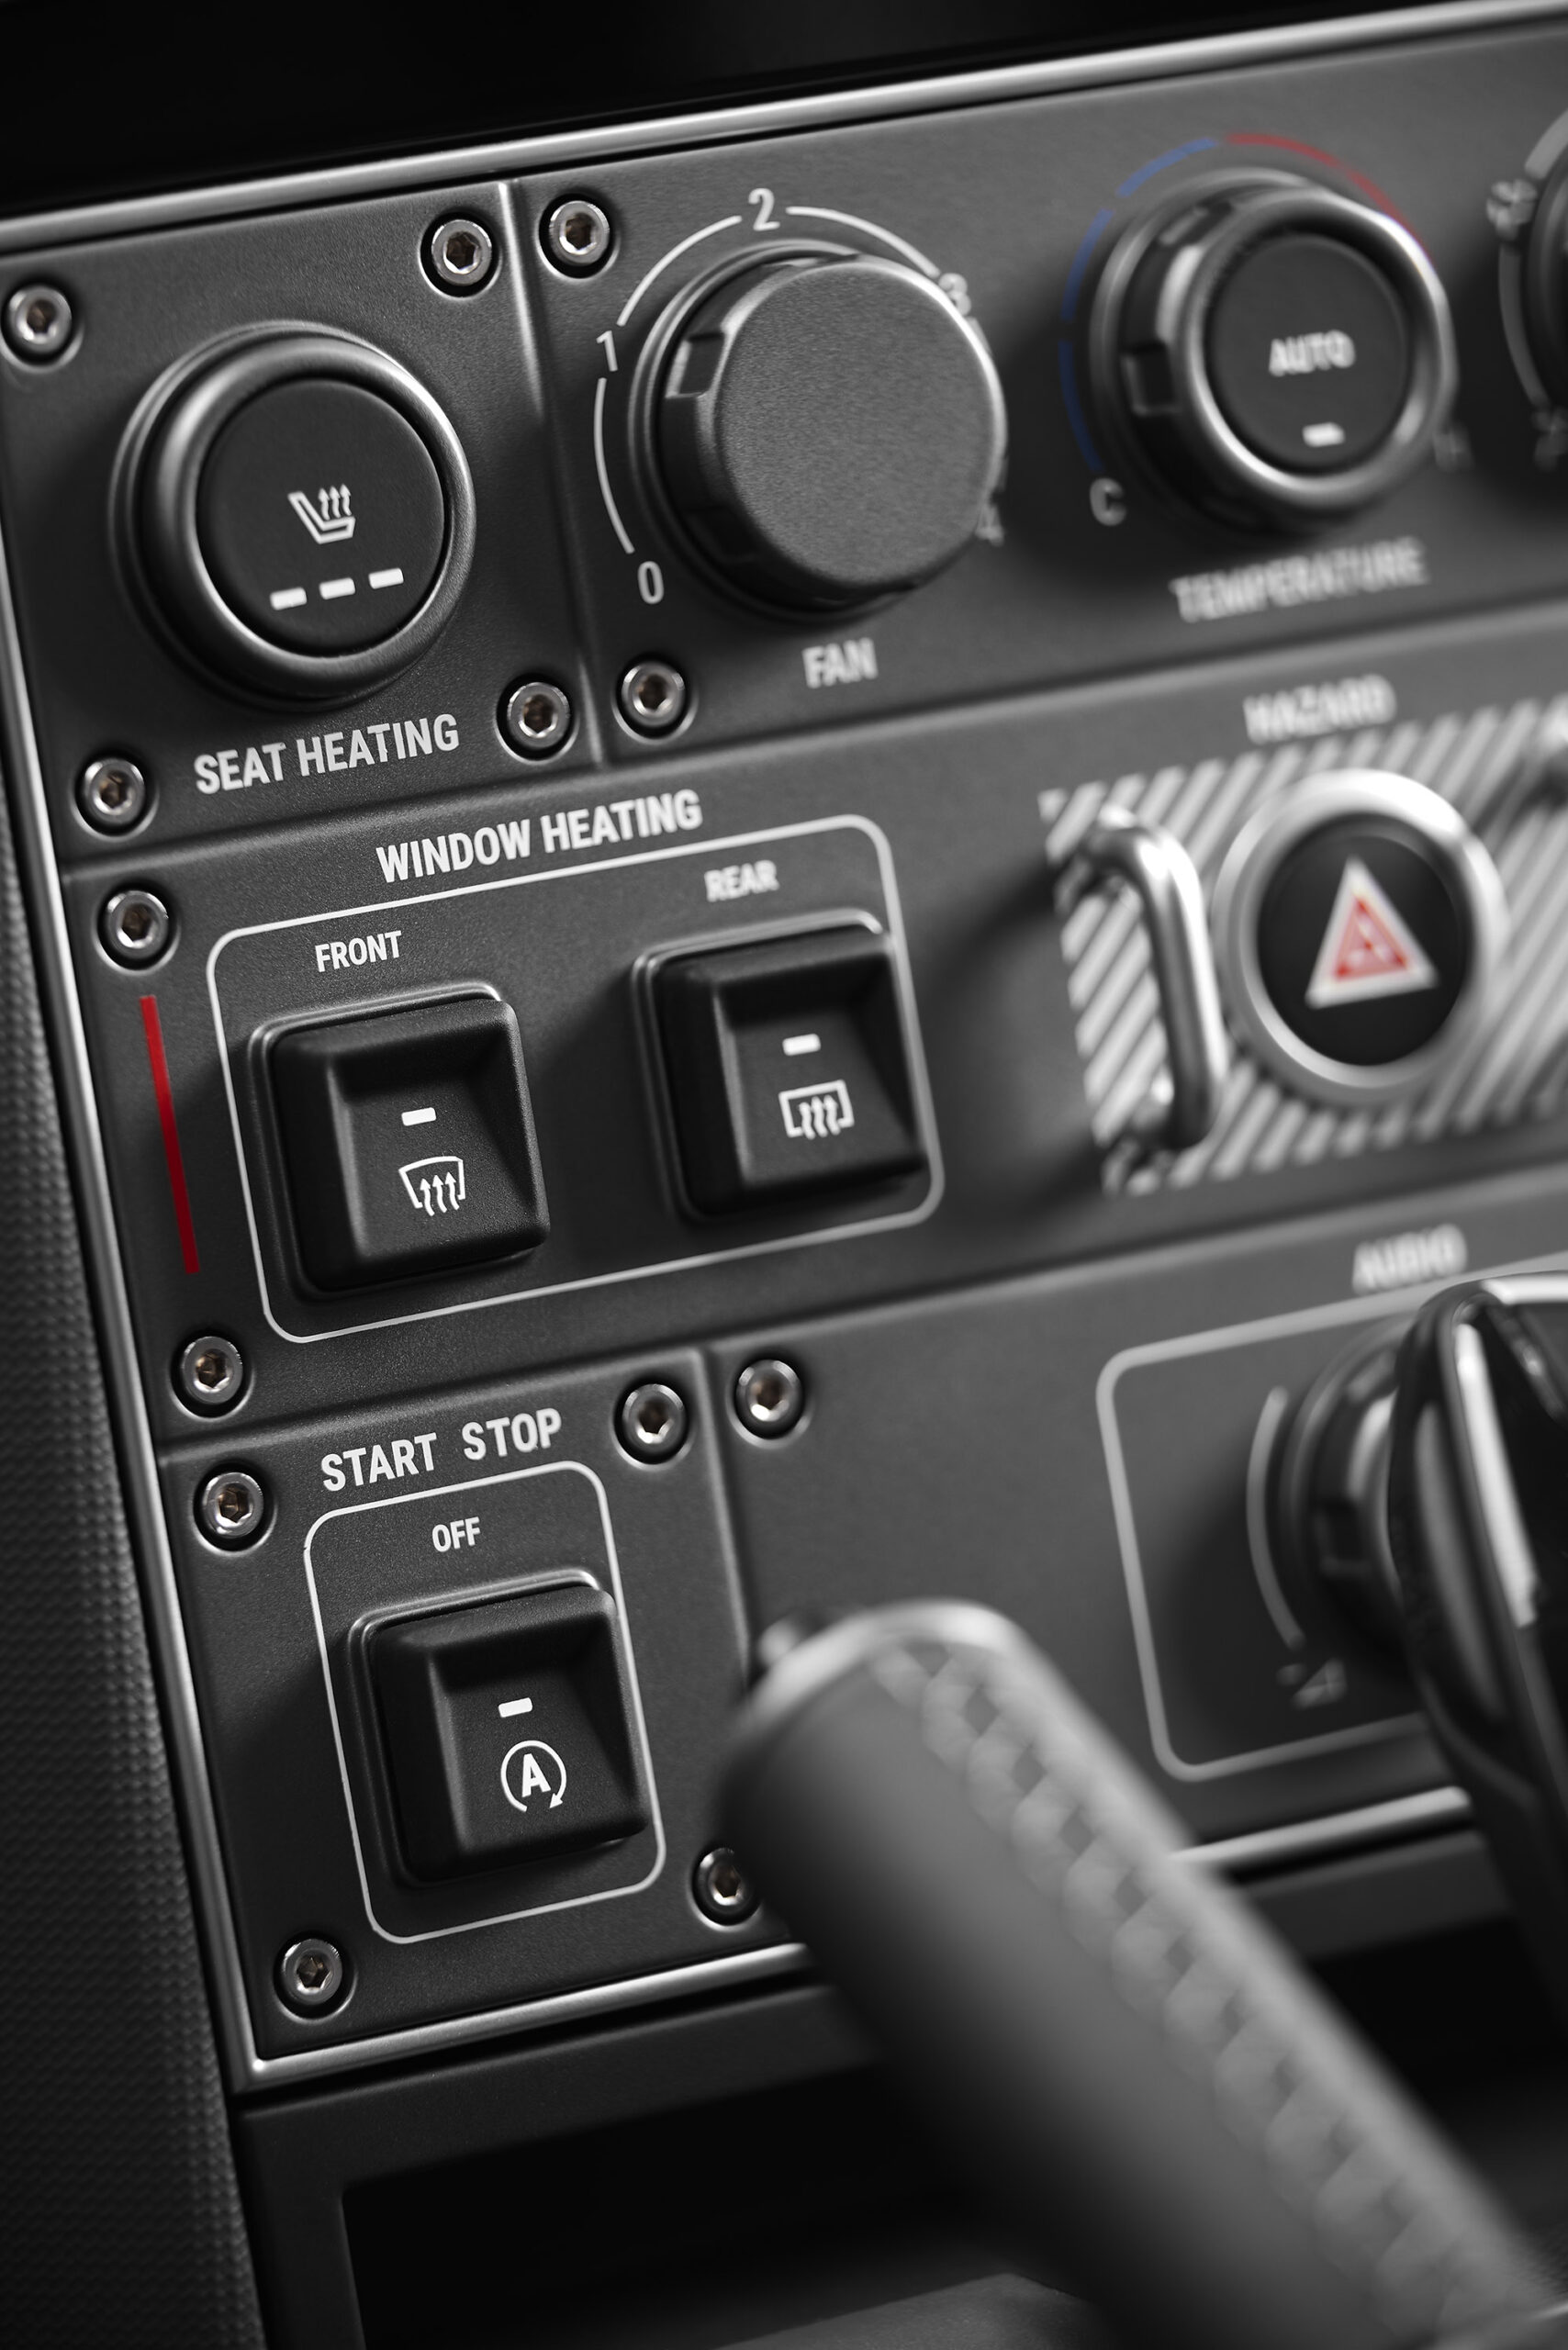 The INEOS interior includes oversized black toggle switches, rotary dials, and evenly spaced controls.